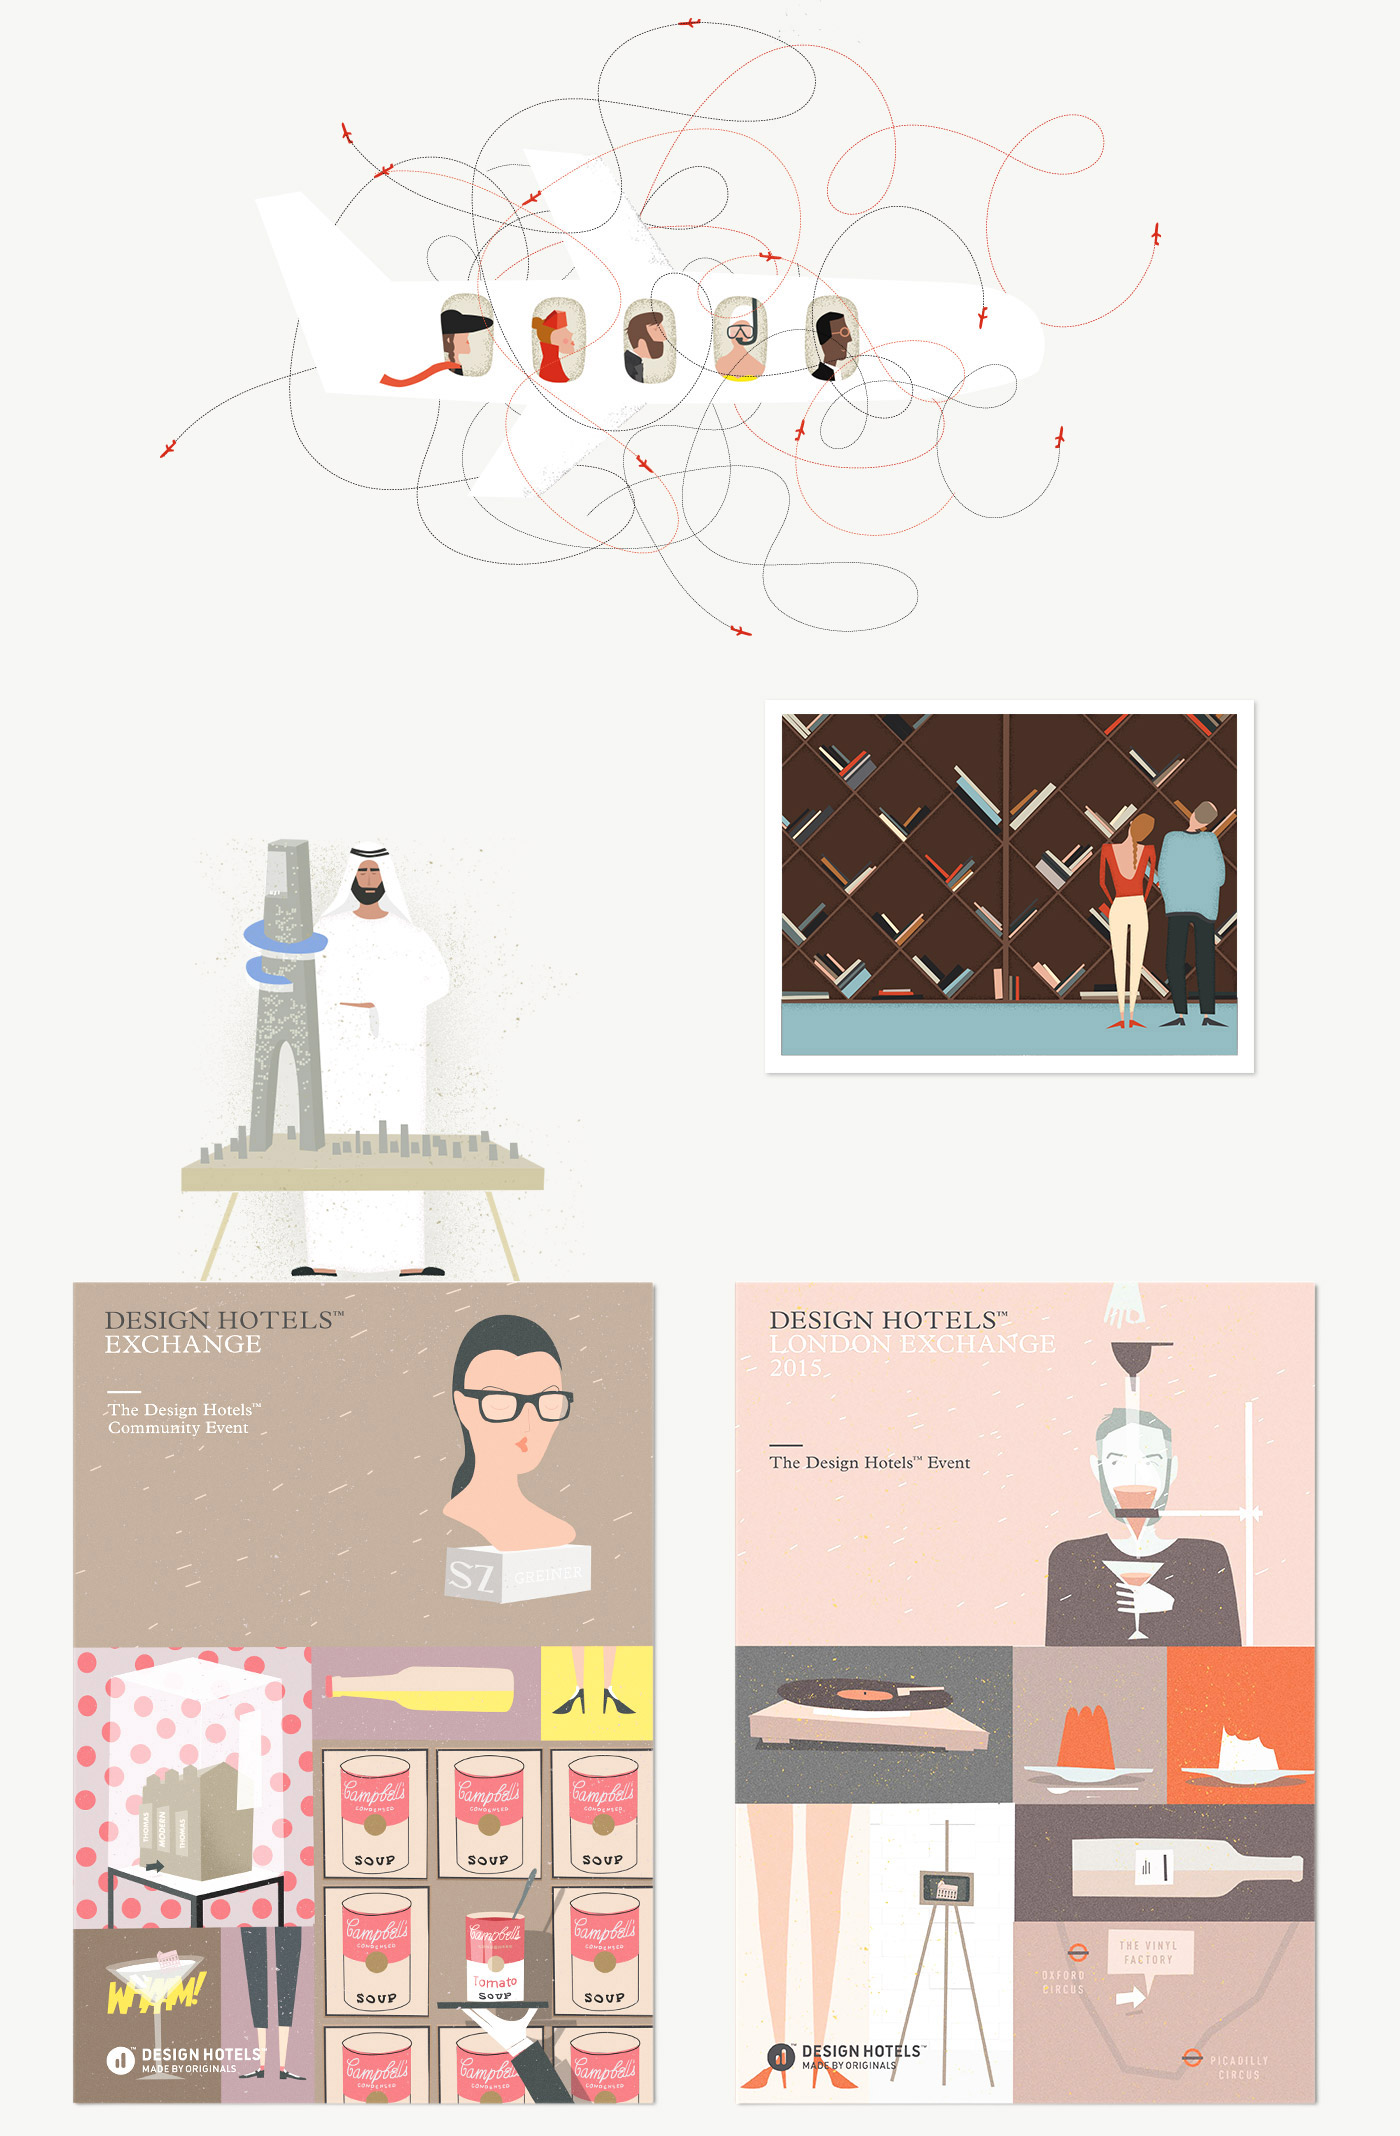 designhotels-community-illus-part4